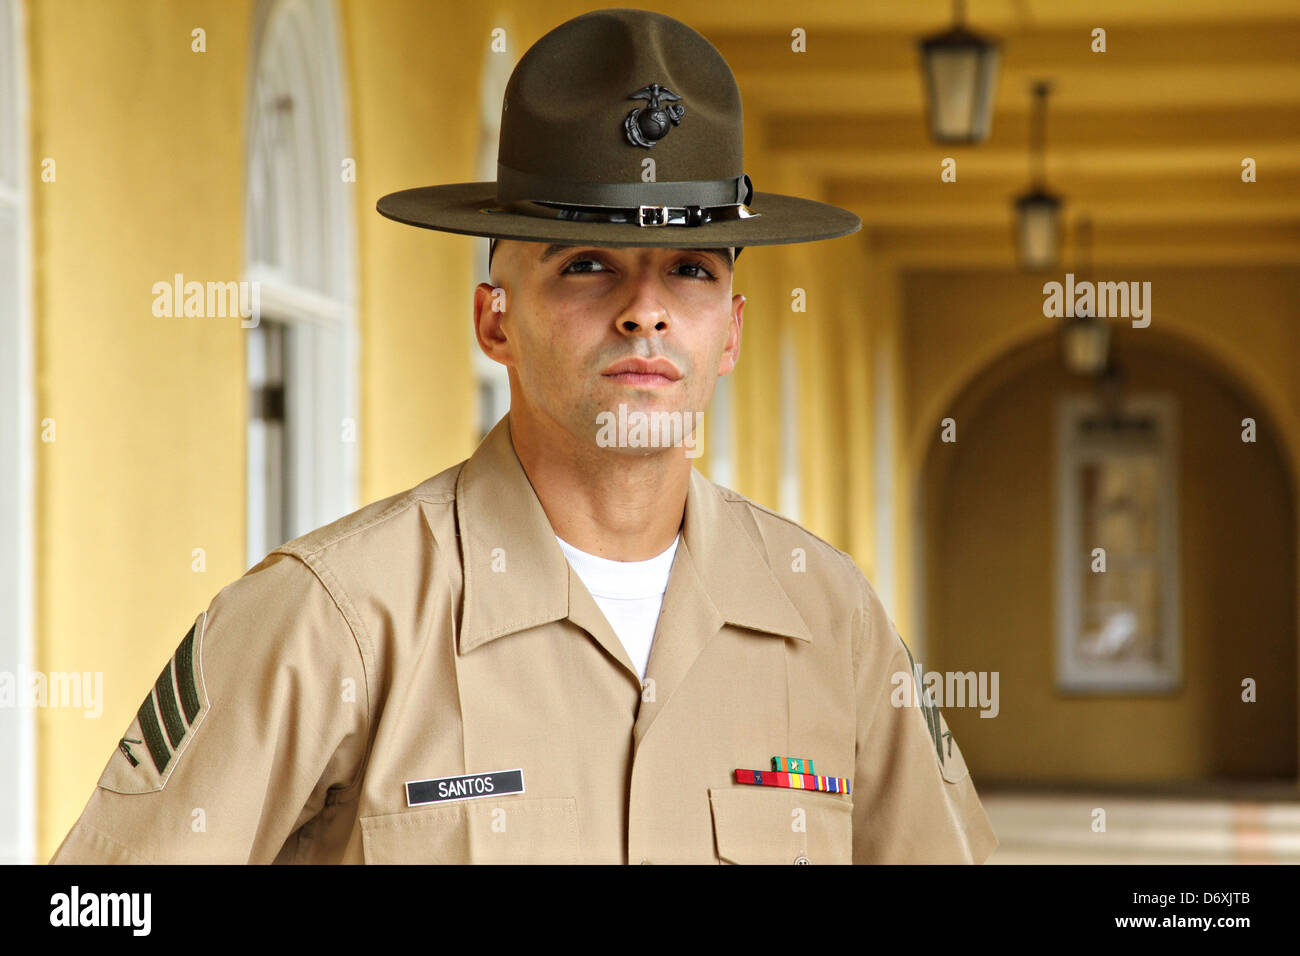 US Marine Corps drill instructor Sgt. Angel A. Santos at ...